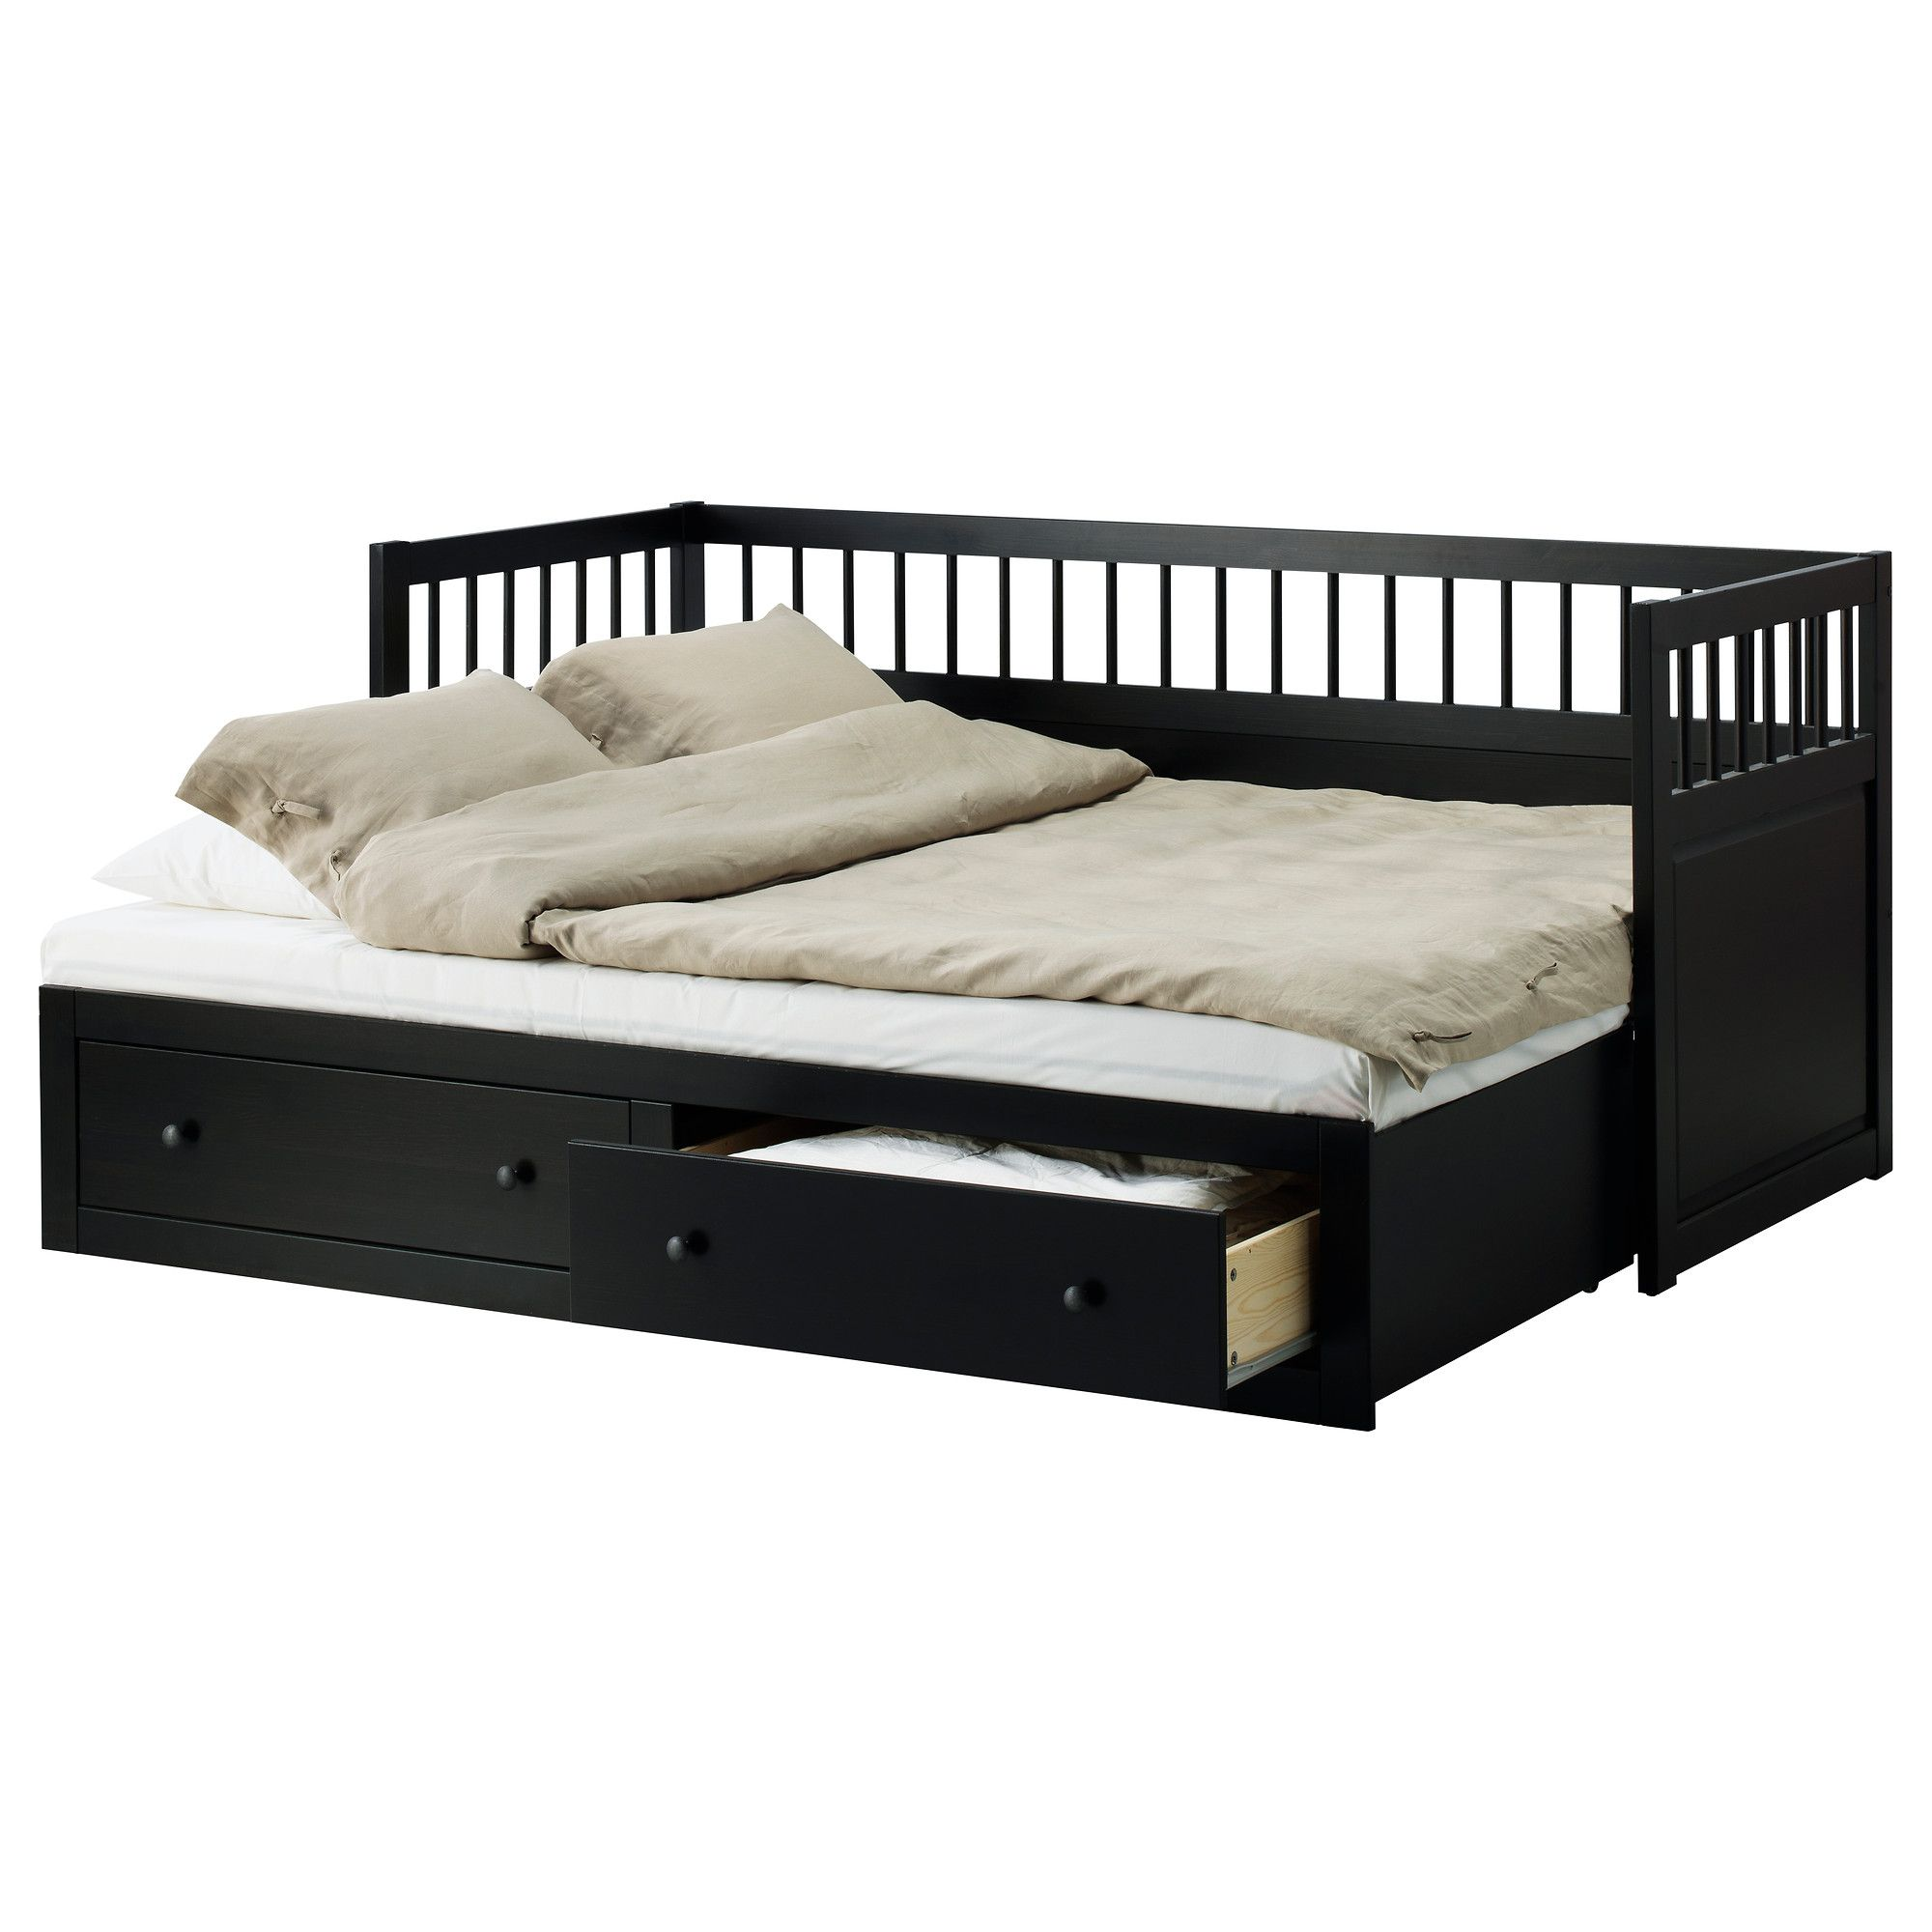 HEMNES Daybed Frame With 2 Drawers IKEA Four Features In One Piece Of  Furniture   Sofa, Single Bed, Double Bed And Storage Solution.